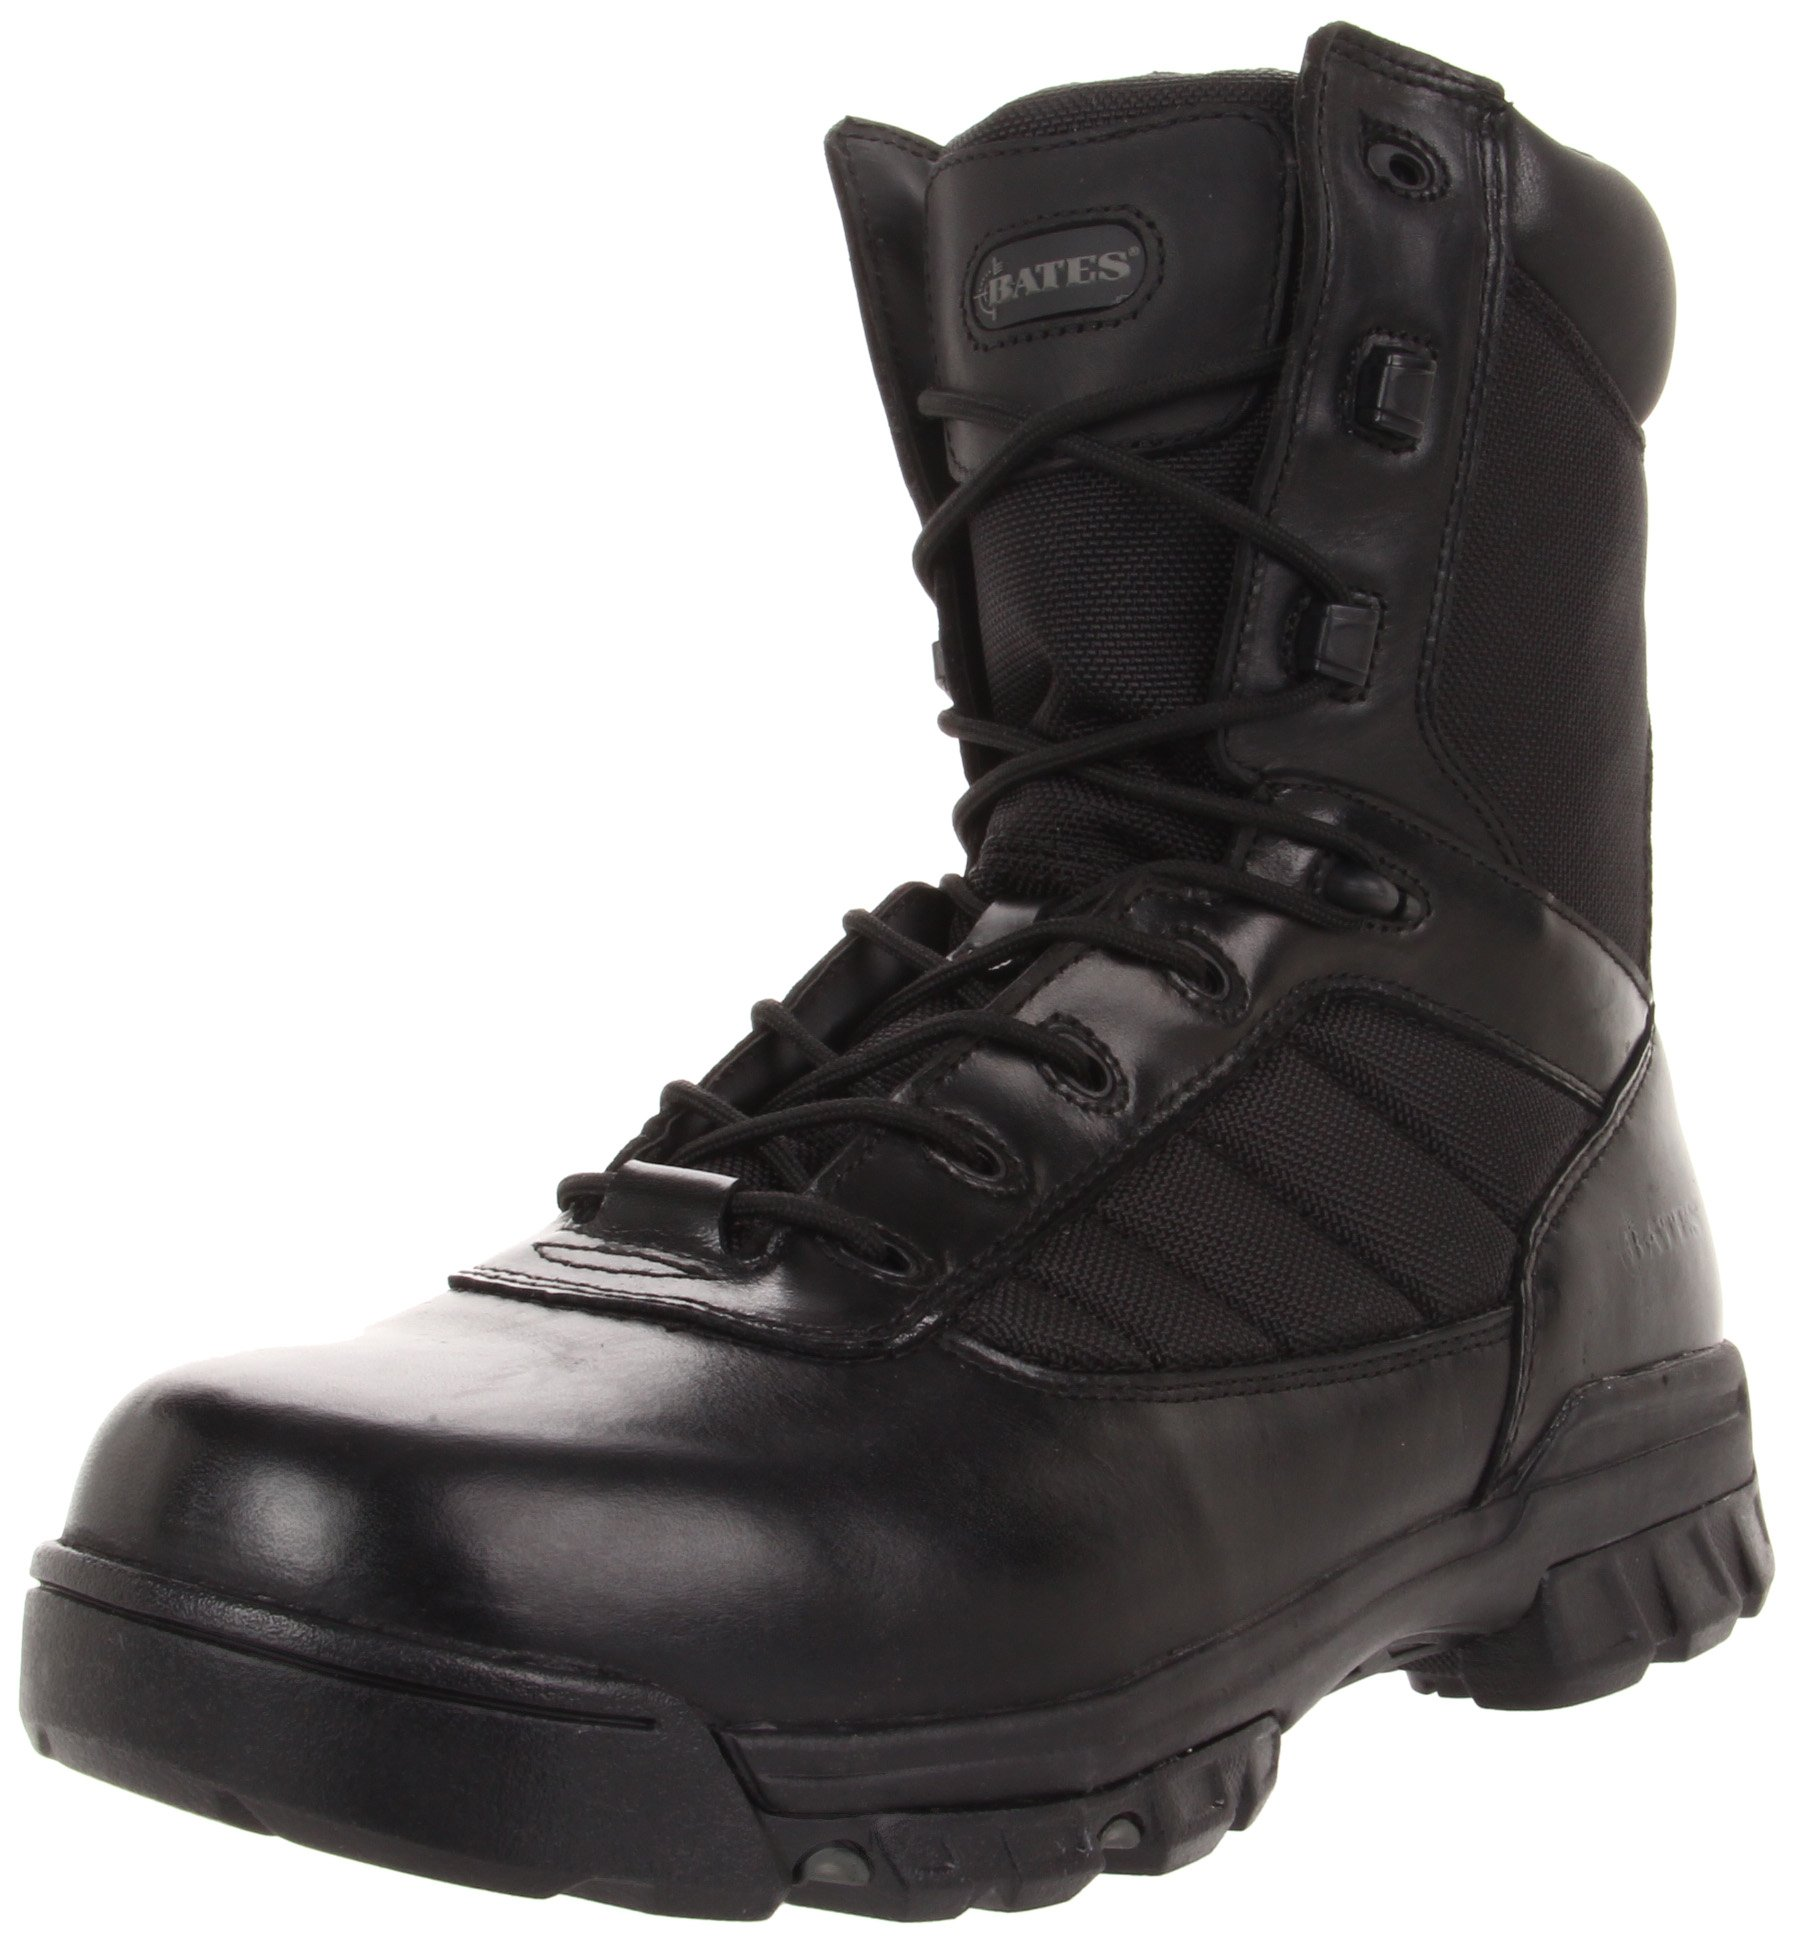 Bates Men's Ultra-Lites 8 Inches Tactical Sport Side Zip Work Boot,Black,7.5 EW US